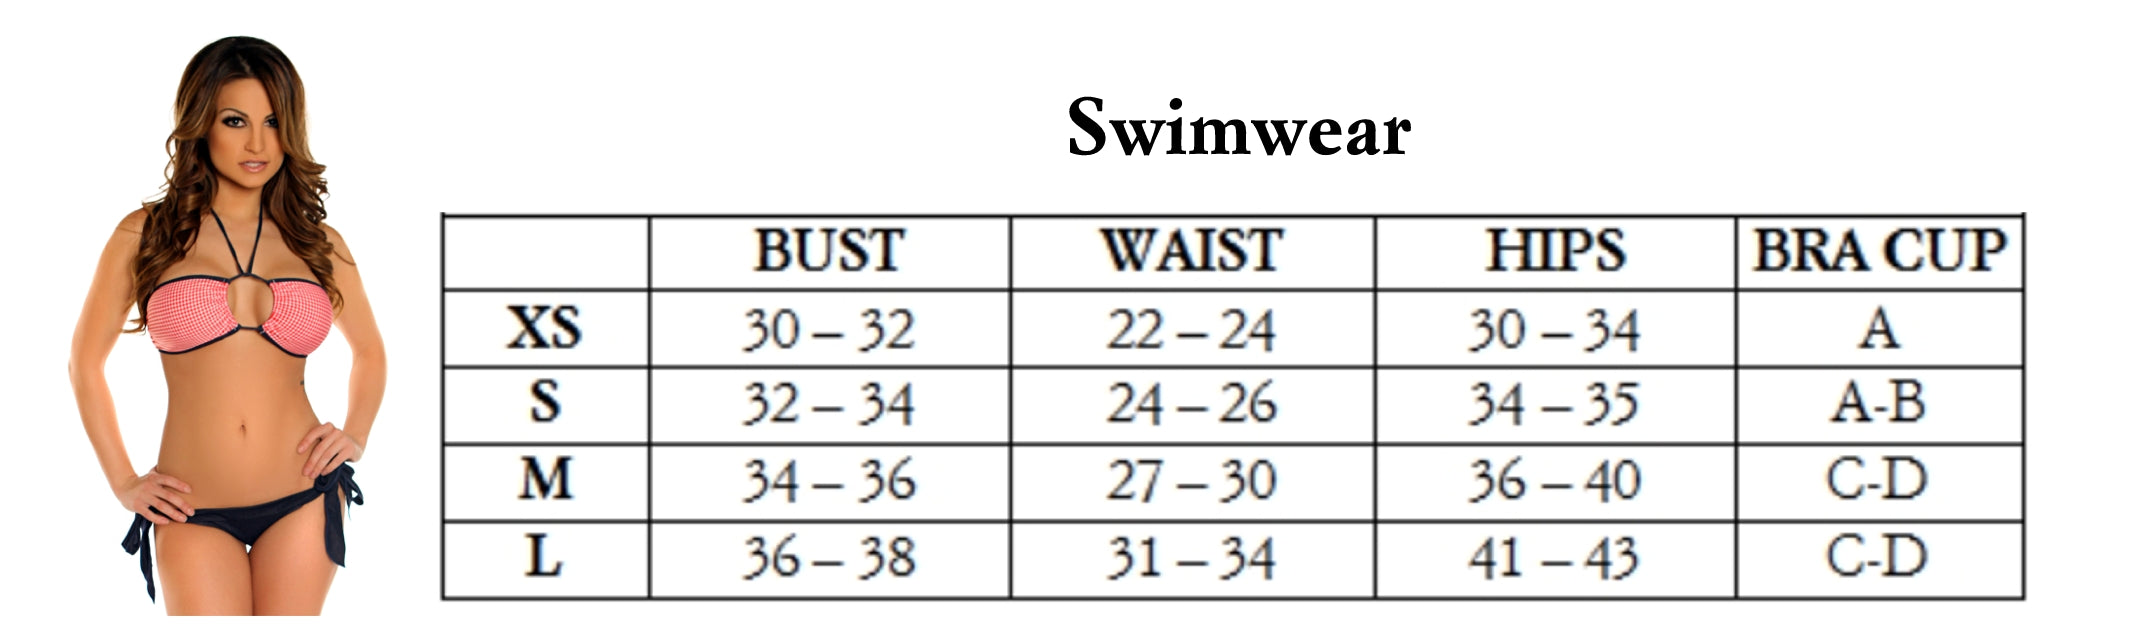 Swimwear Sizes from The Presley Boutique